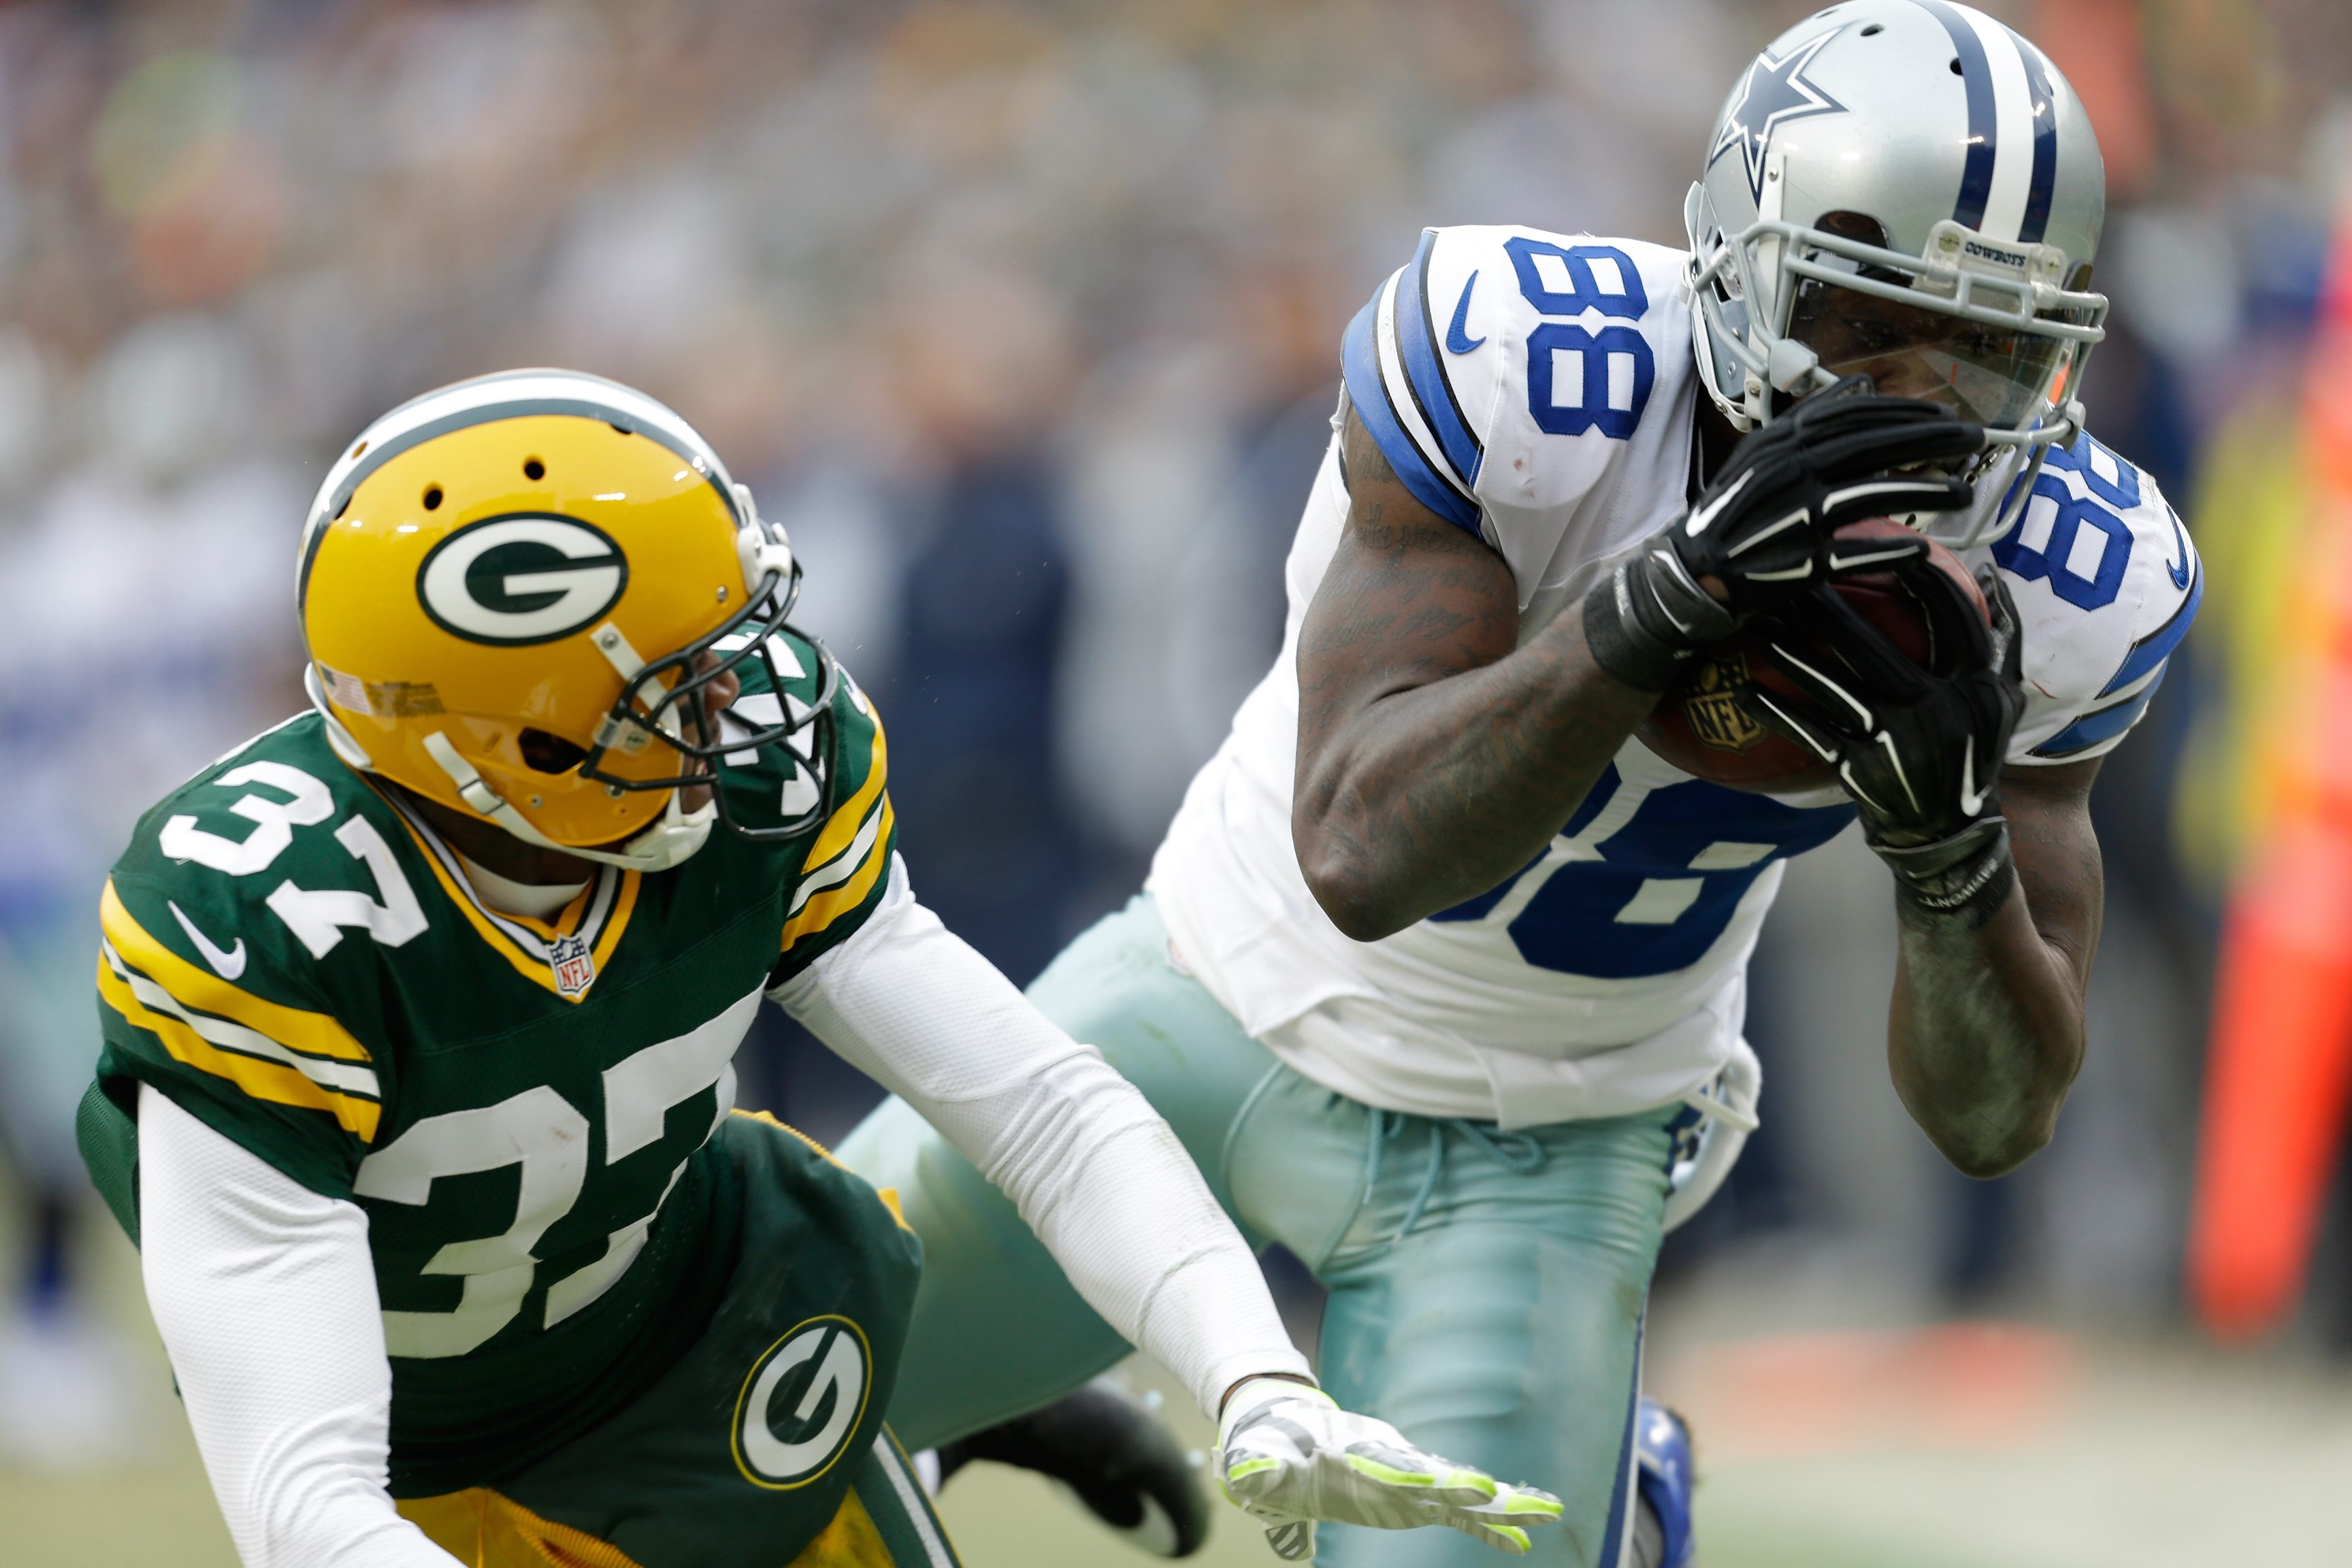 Dallas Cowboys wideout Dez Bryant tops the NFLPA's list of merchandise sales covering the last six months. (Getty Images)